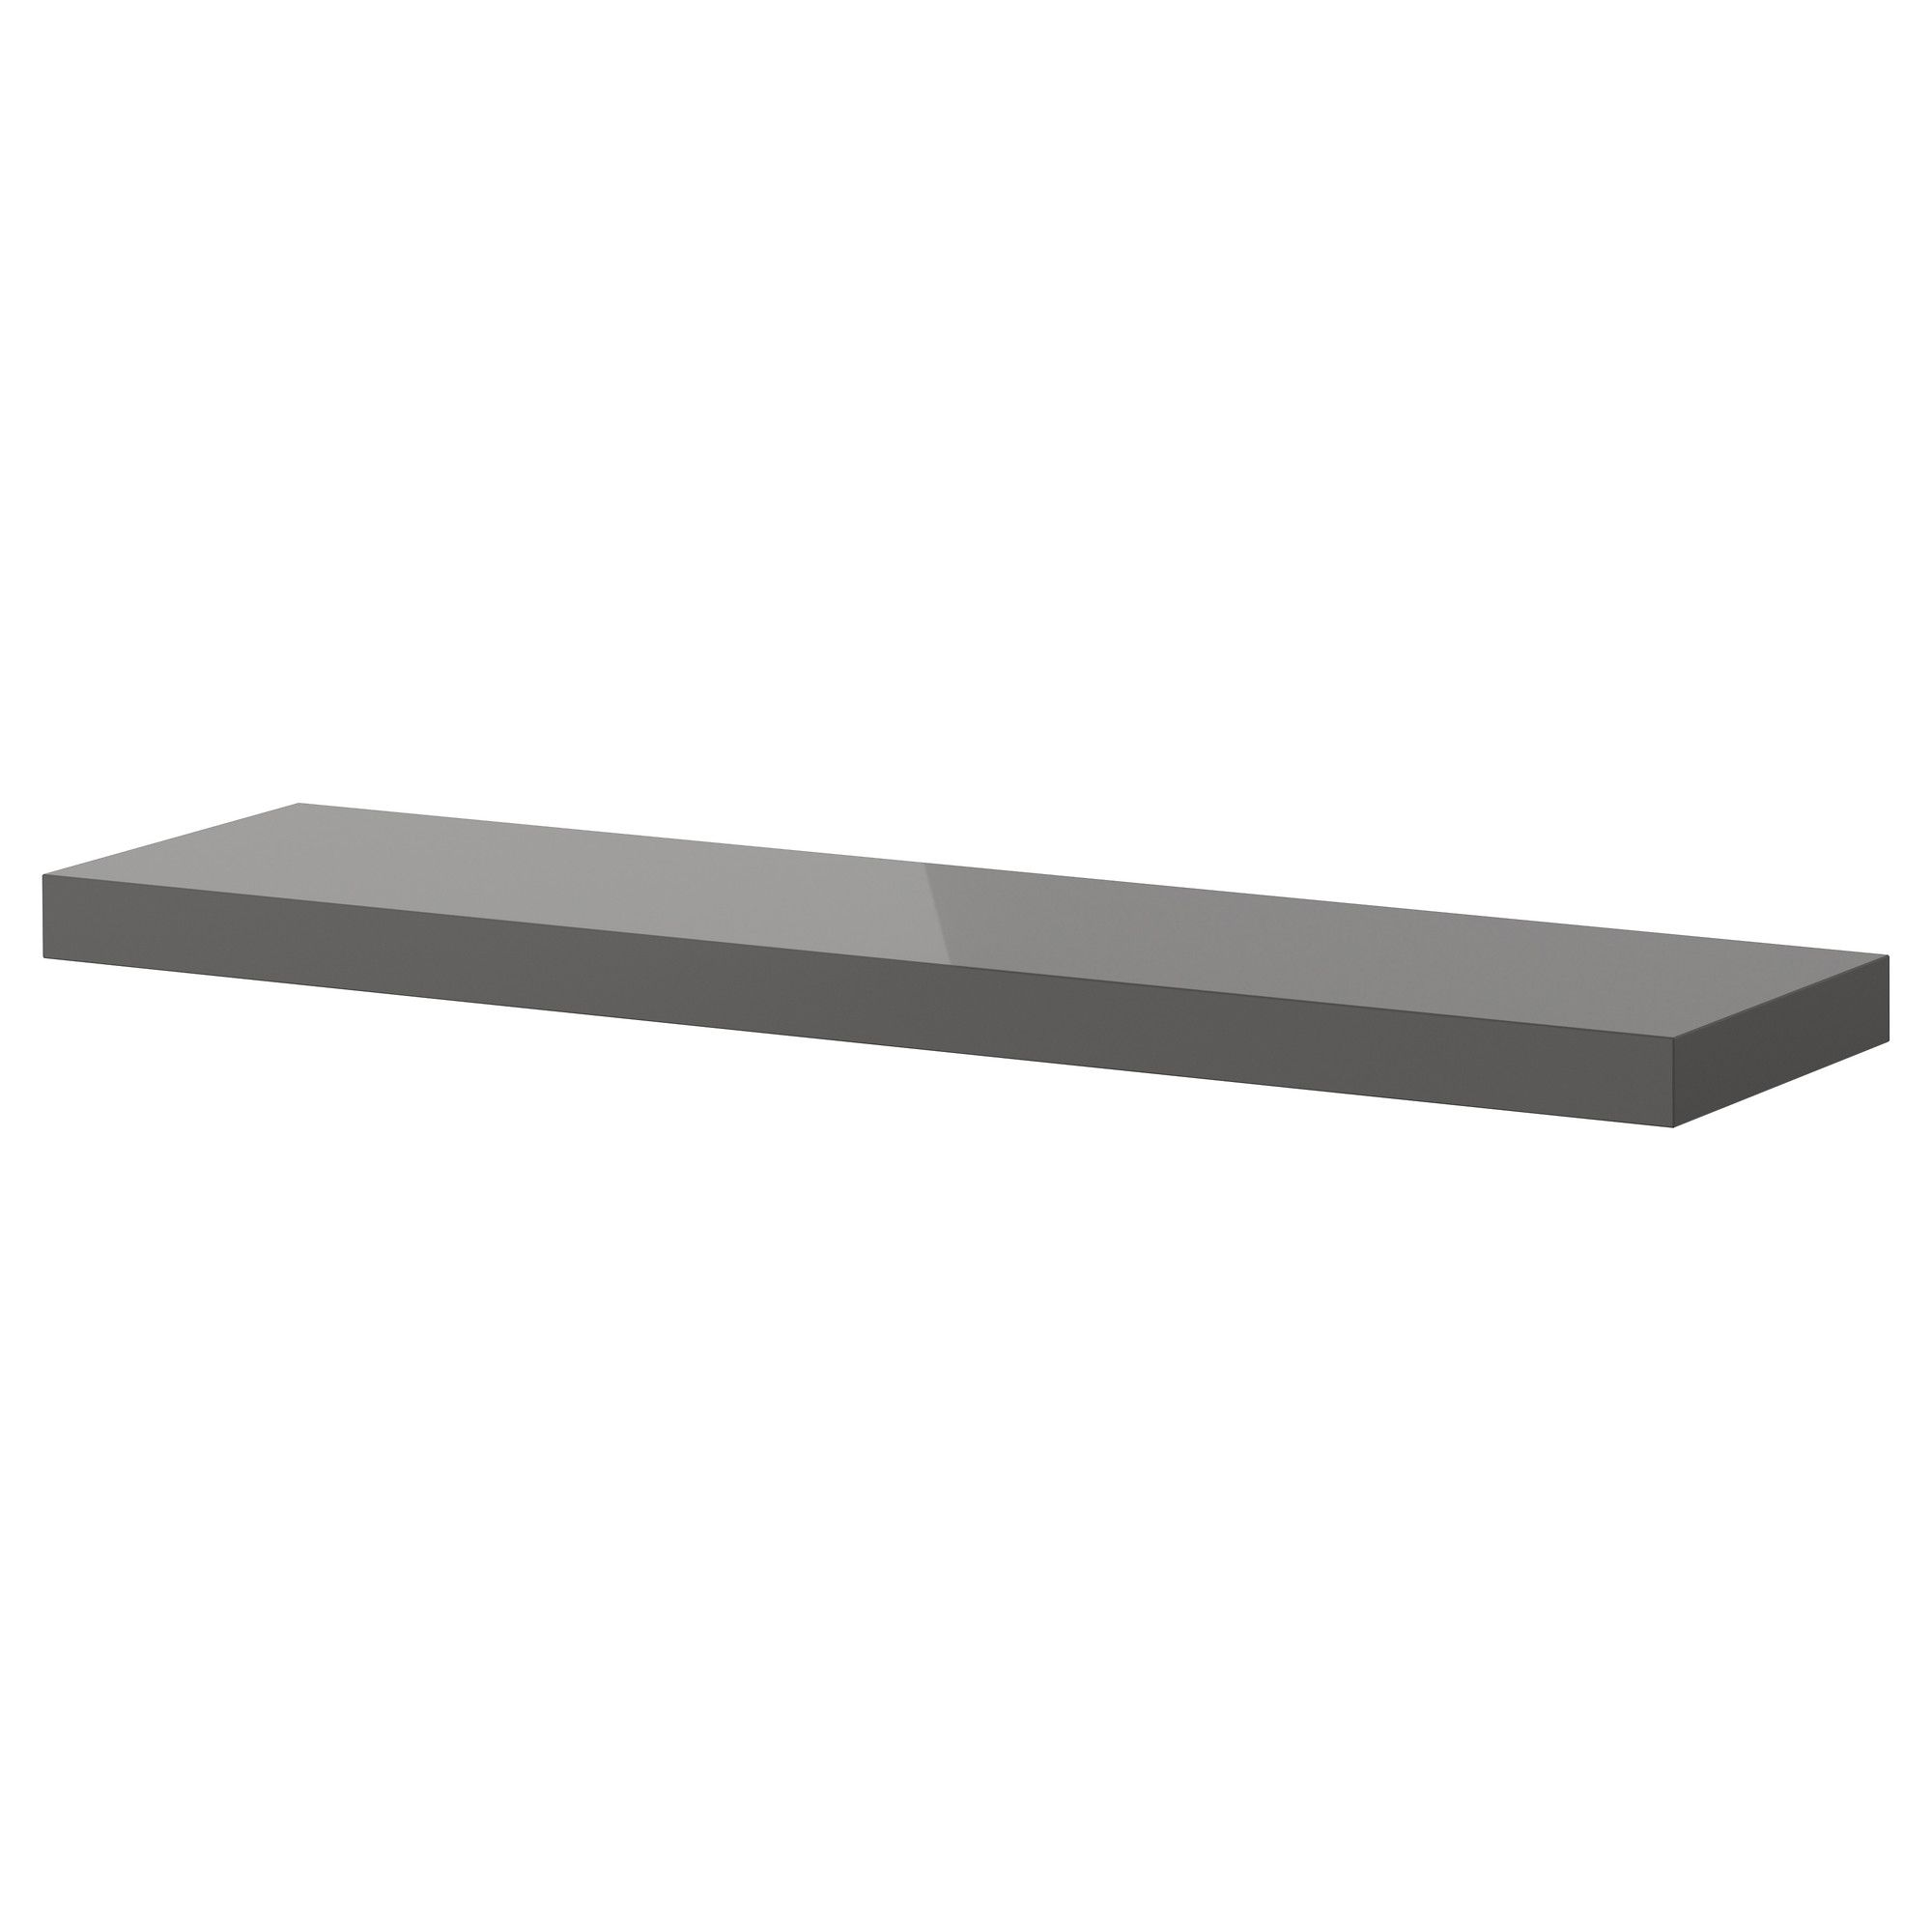 lack wall shelf high gloss gray ikea home black floating deep white shelving unit corner support mudroom coat hooks entrance way rack mountable desk glass shelves mount small